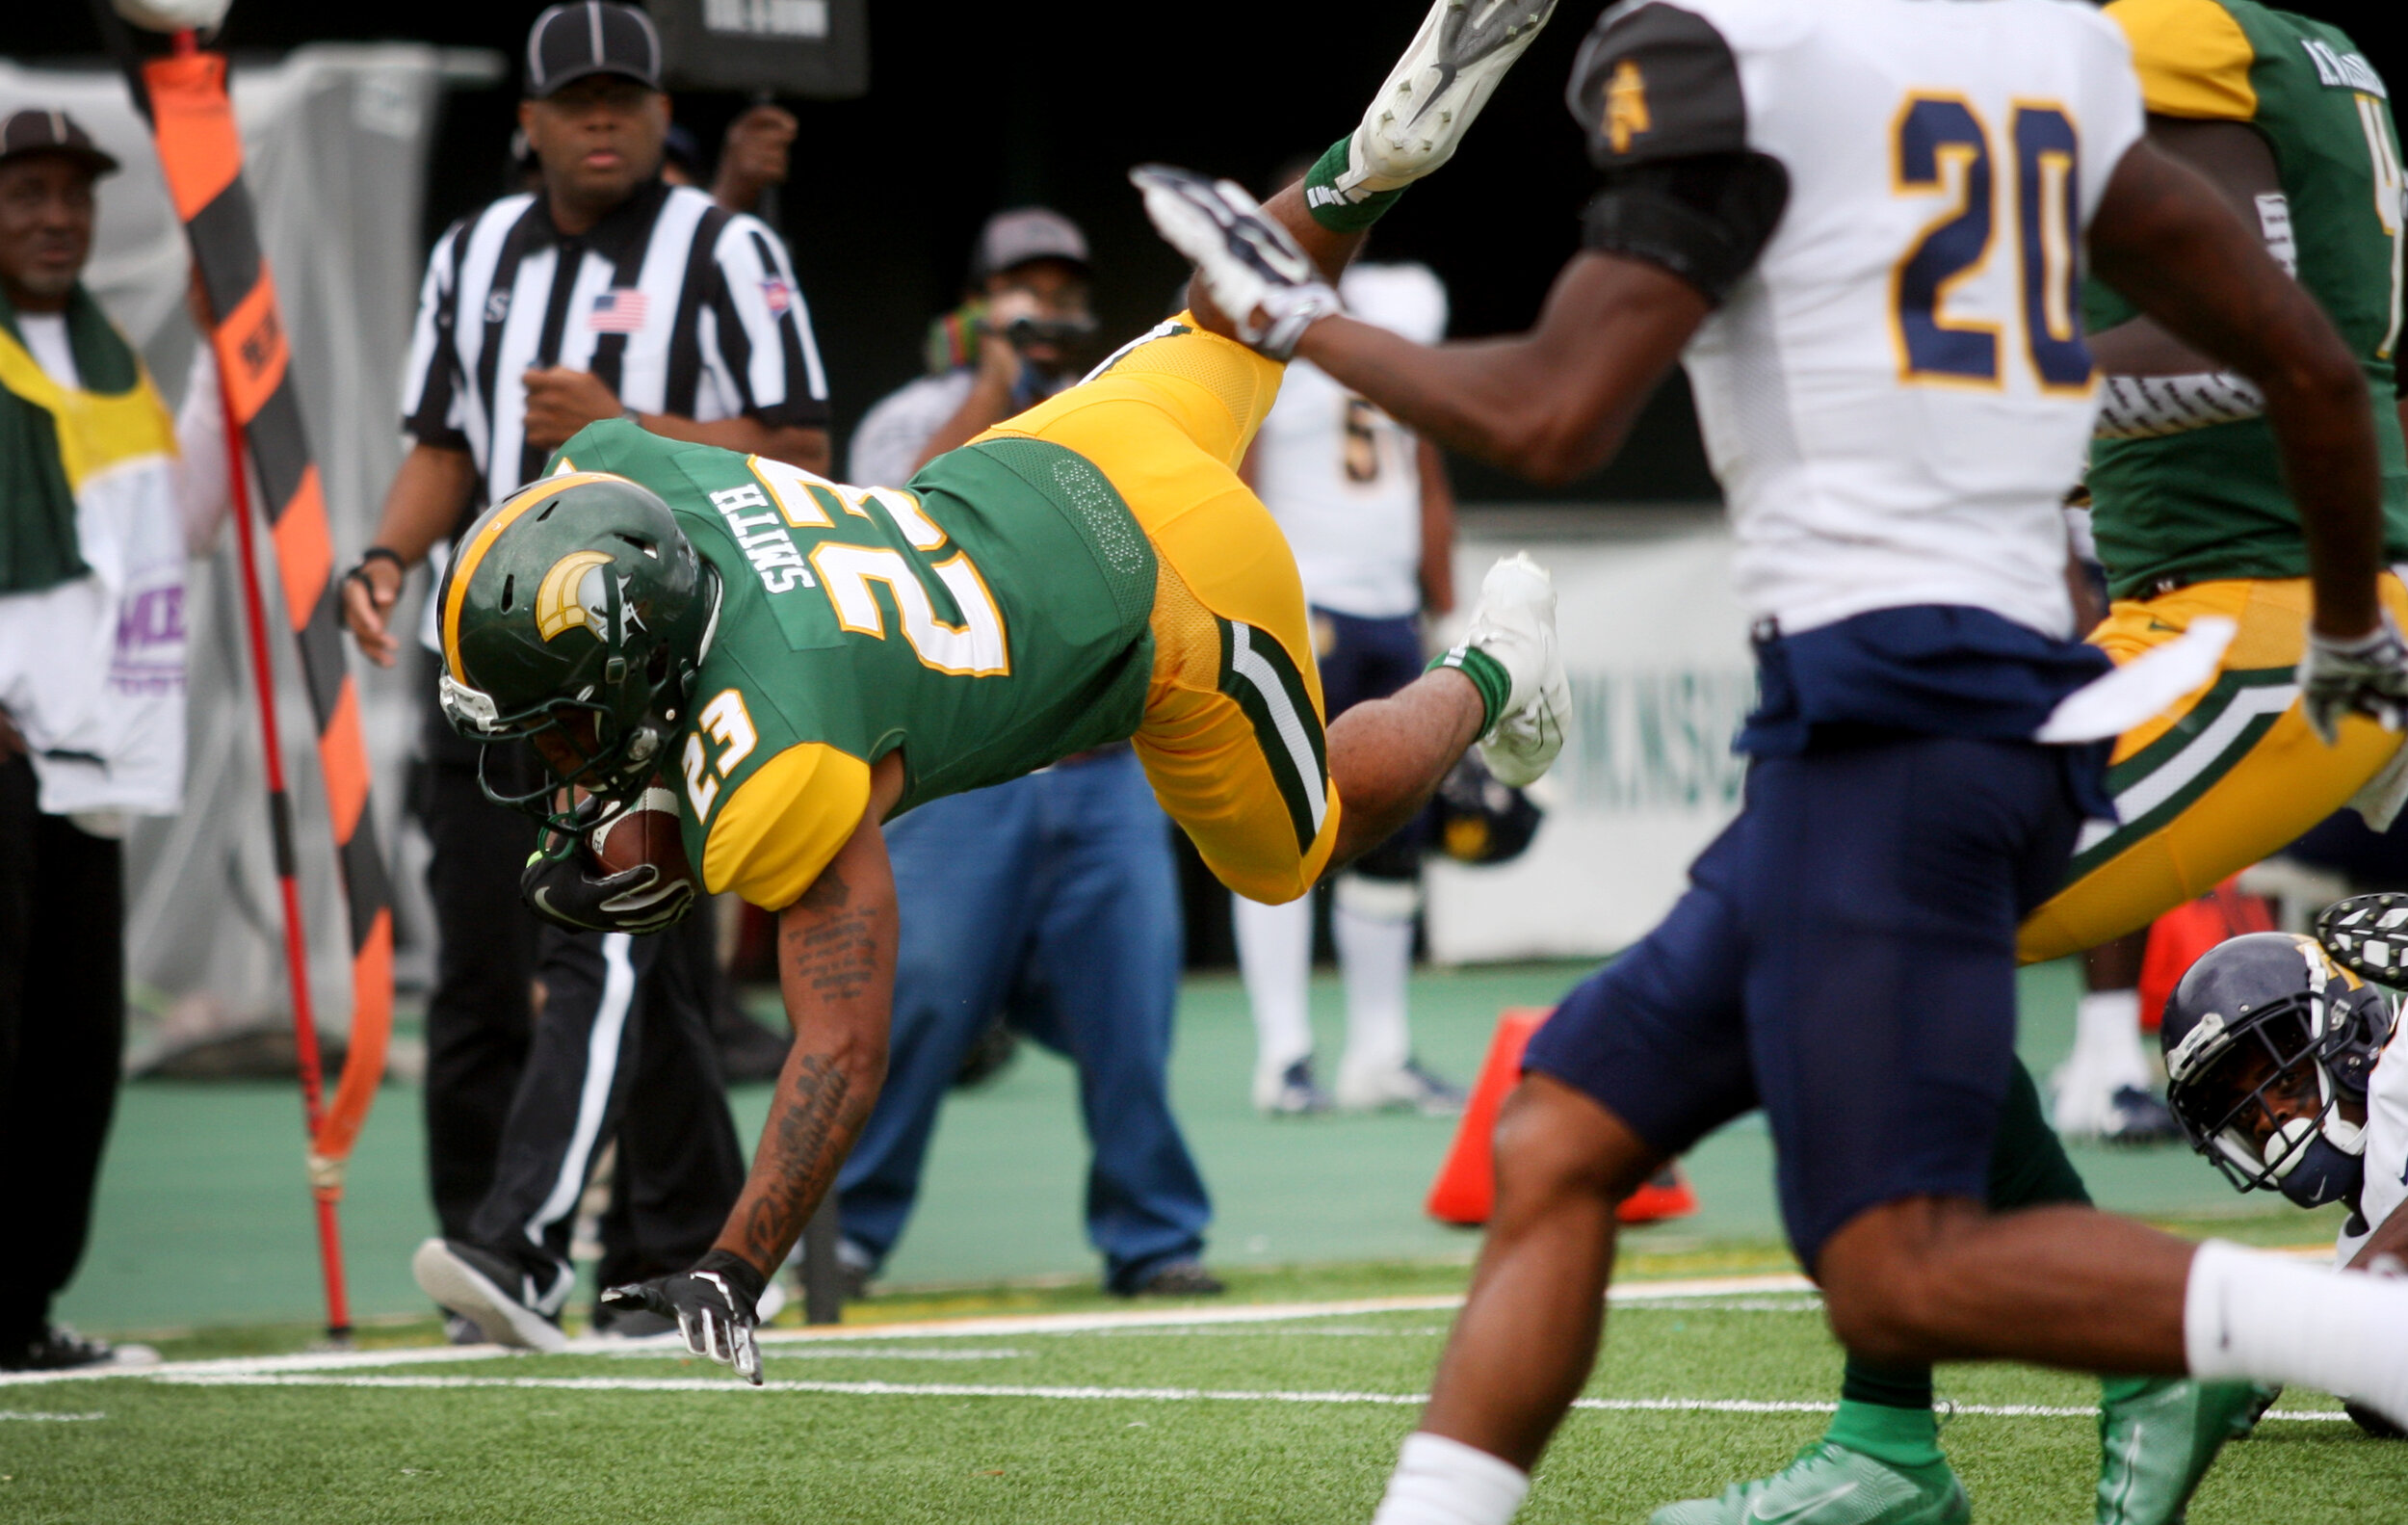 Norfolk State freshman running back Rayquan Smith takes his first collegiate carry 62-yards during the Spartans' 58-19 loss to North Carolina A&T, Saturday, October 5, 2019 at Dick Price Stadium in Norfolk.